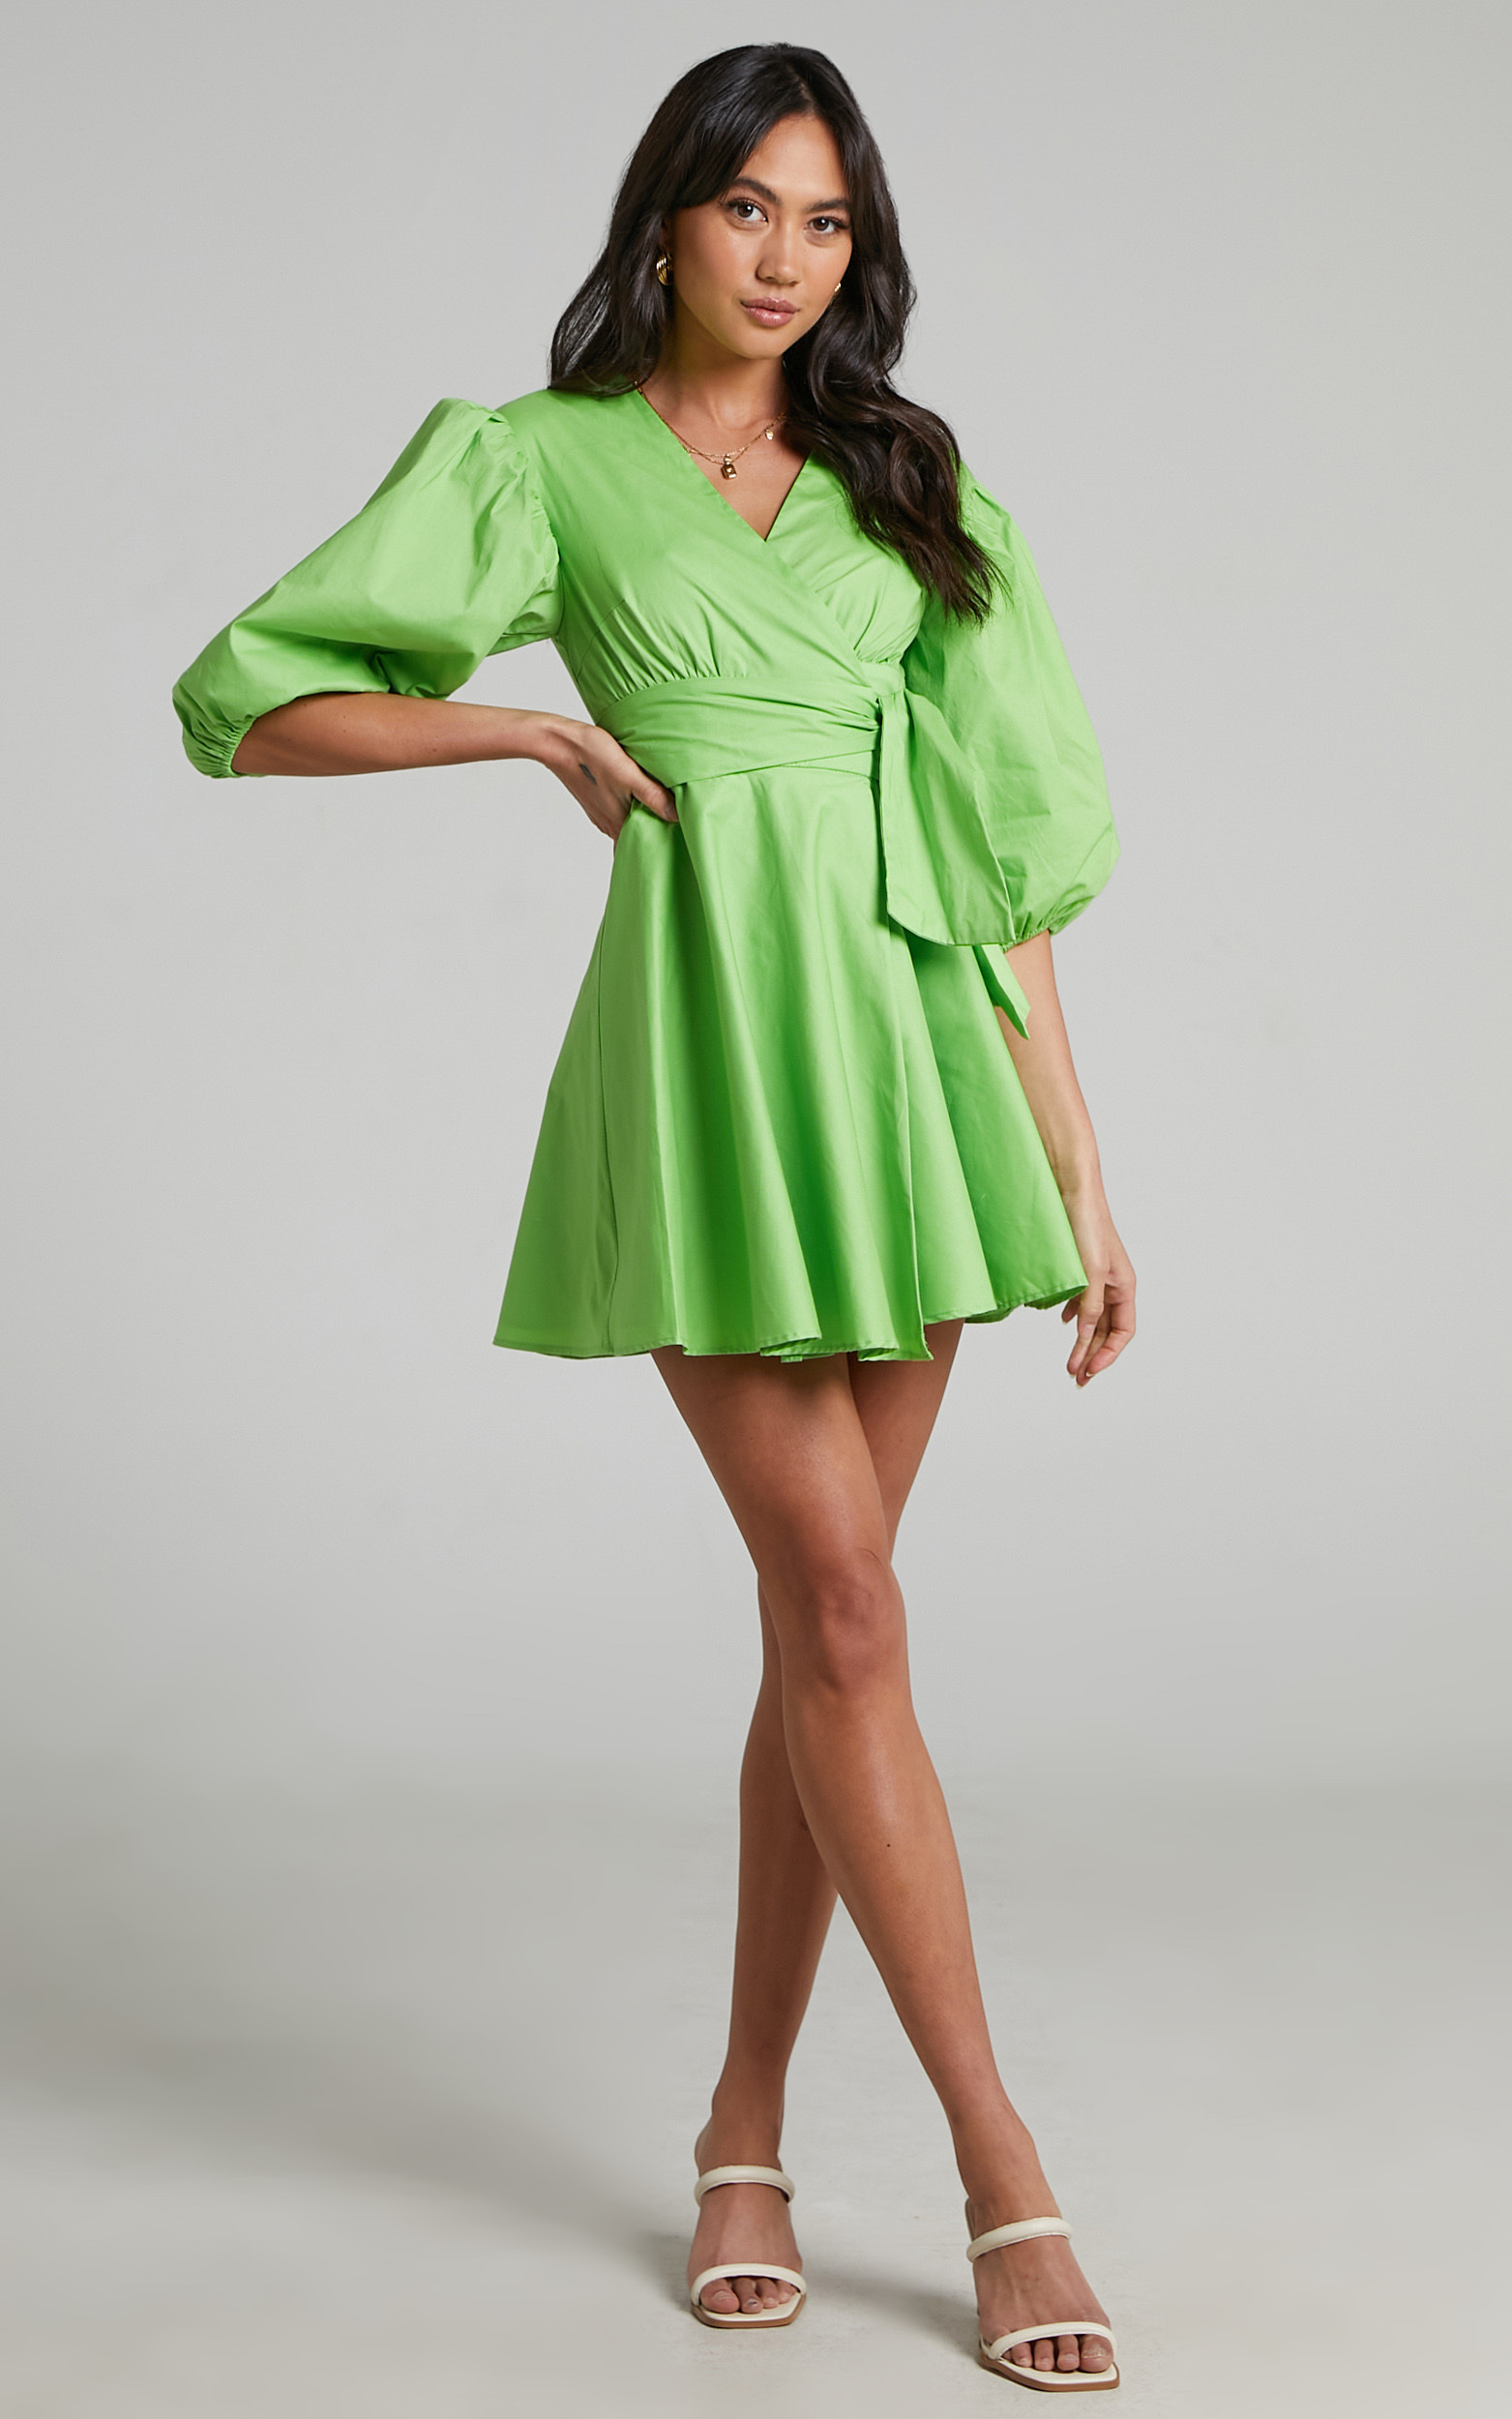 Zyla Puff Sleeve Wrap Mini Dress in Green - 04, GRN4, hi-res image number null